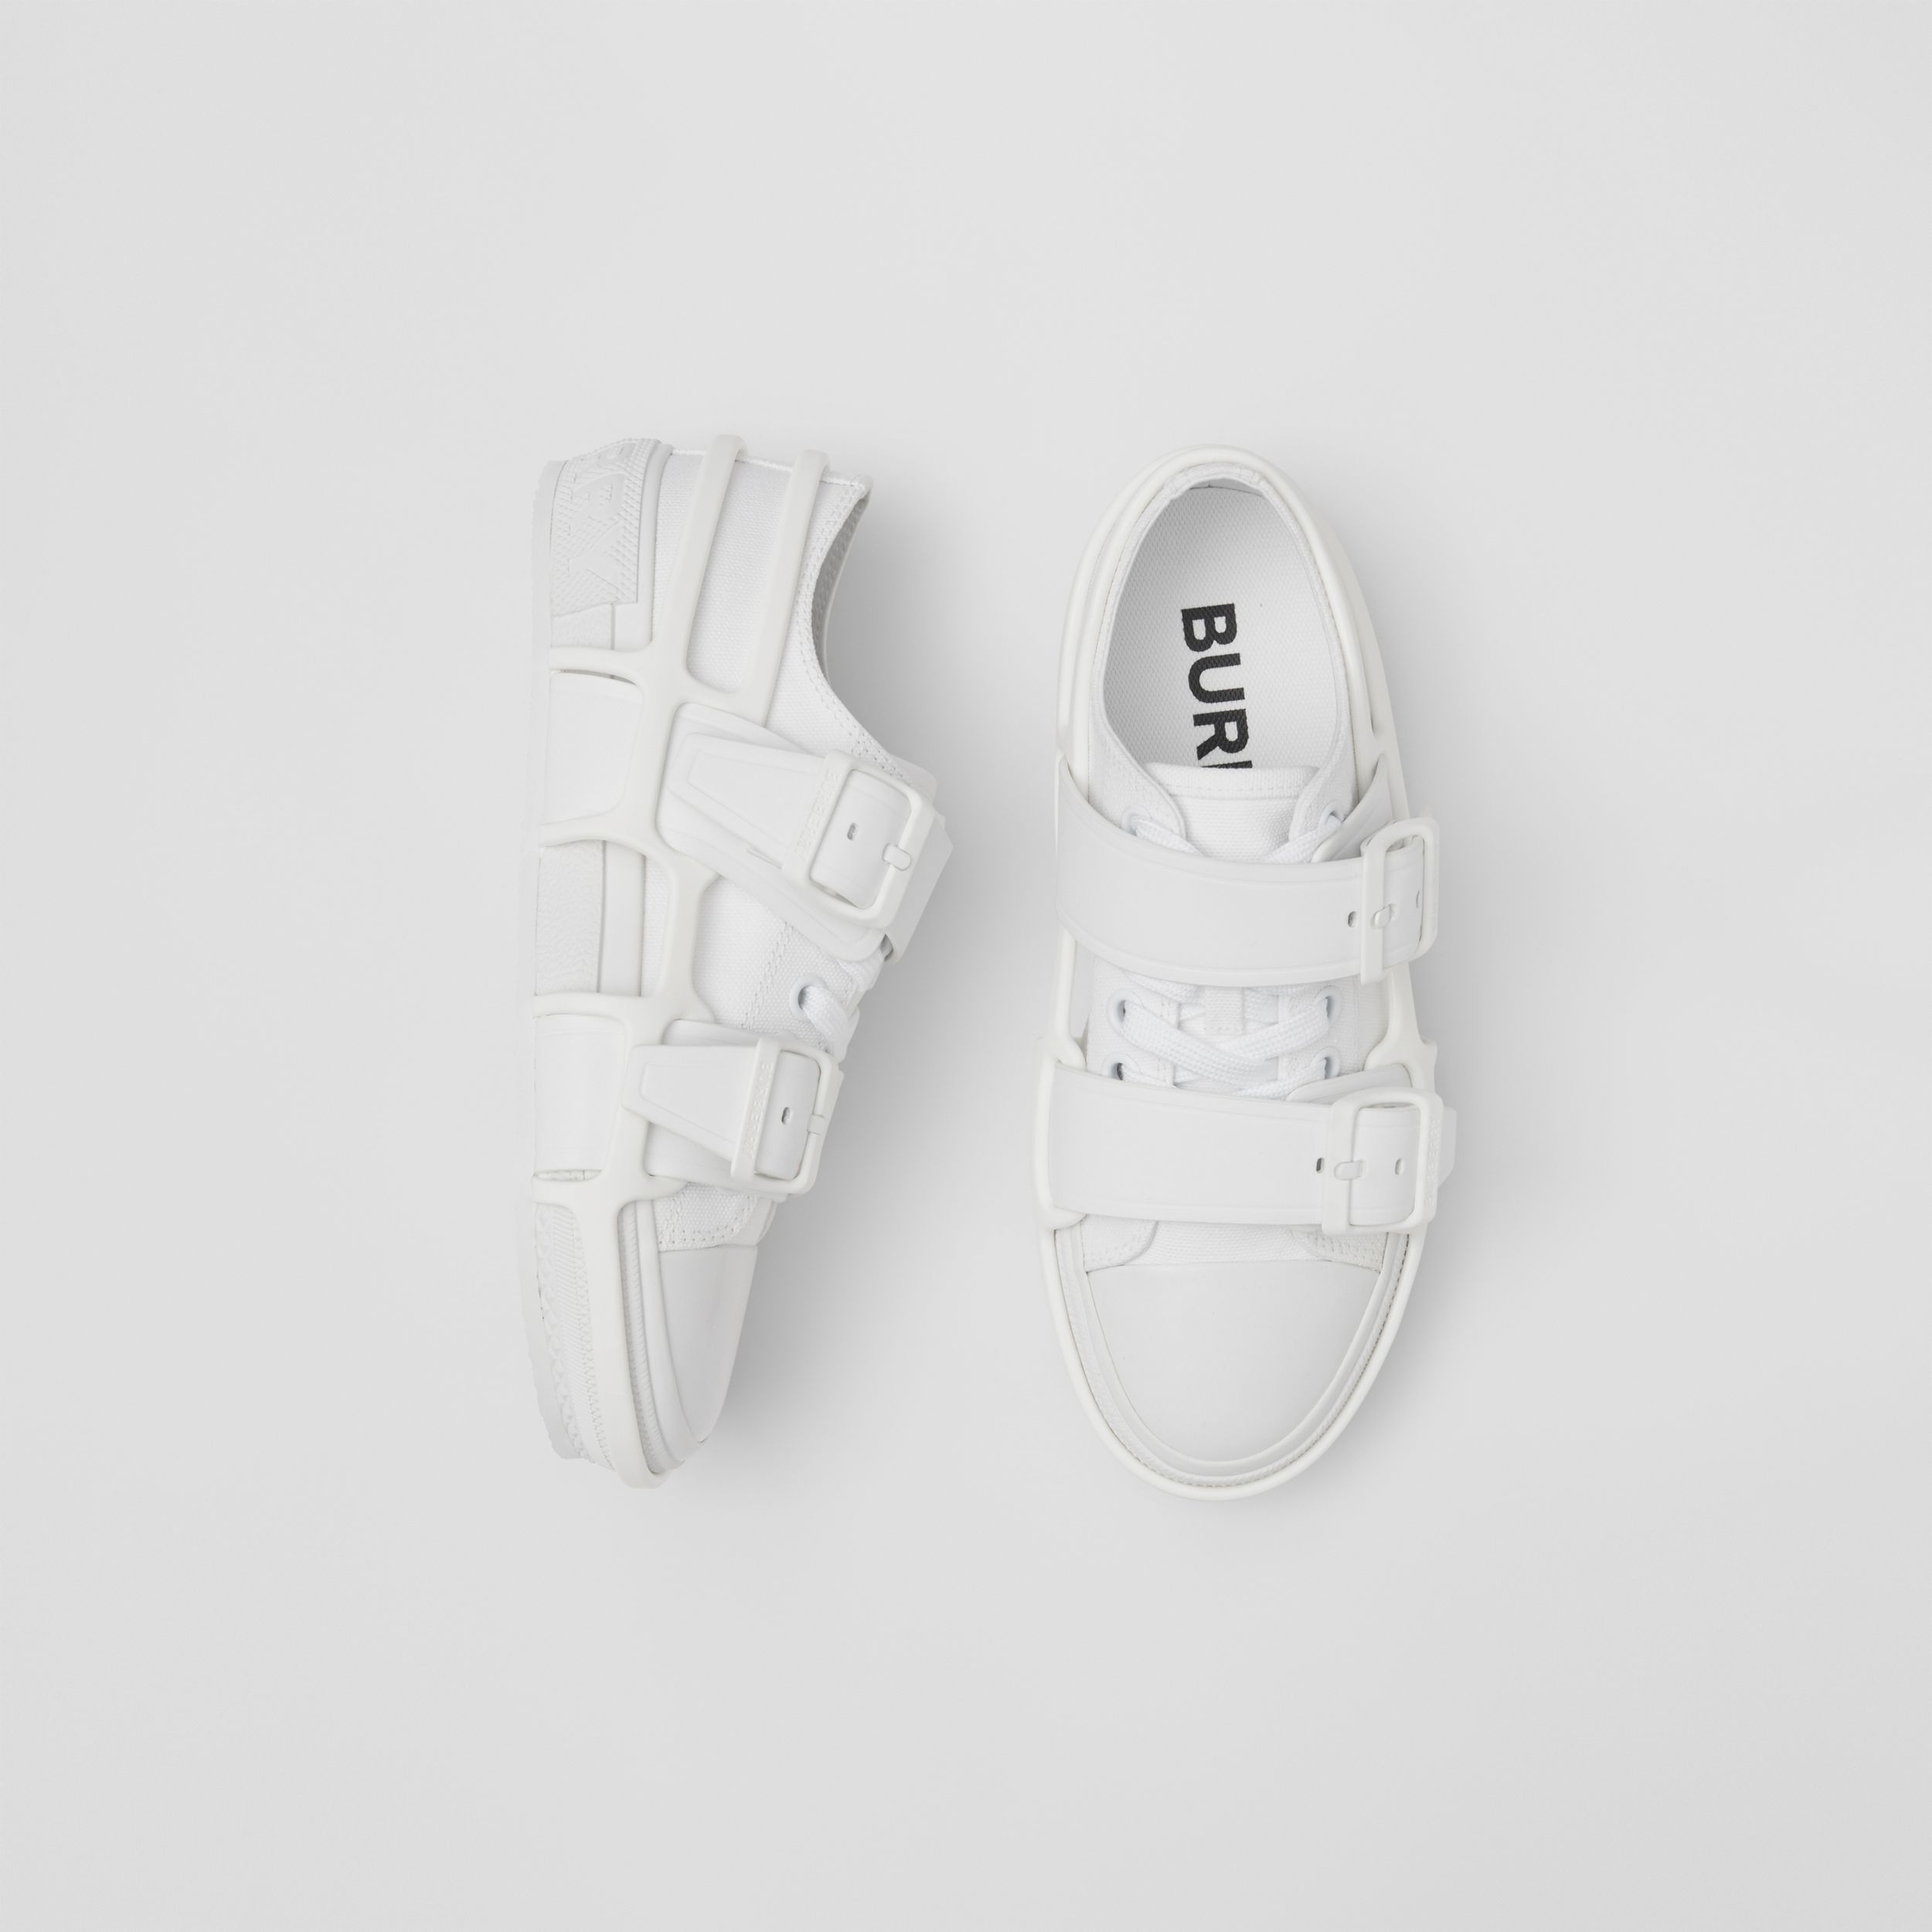 Cotton and Leather Webb Sneakers in White - Women | Burberry - 1